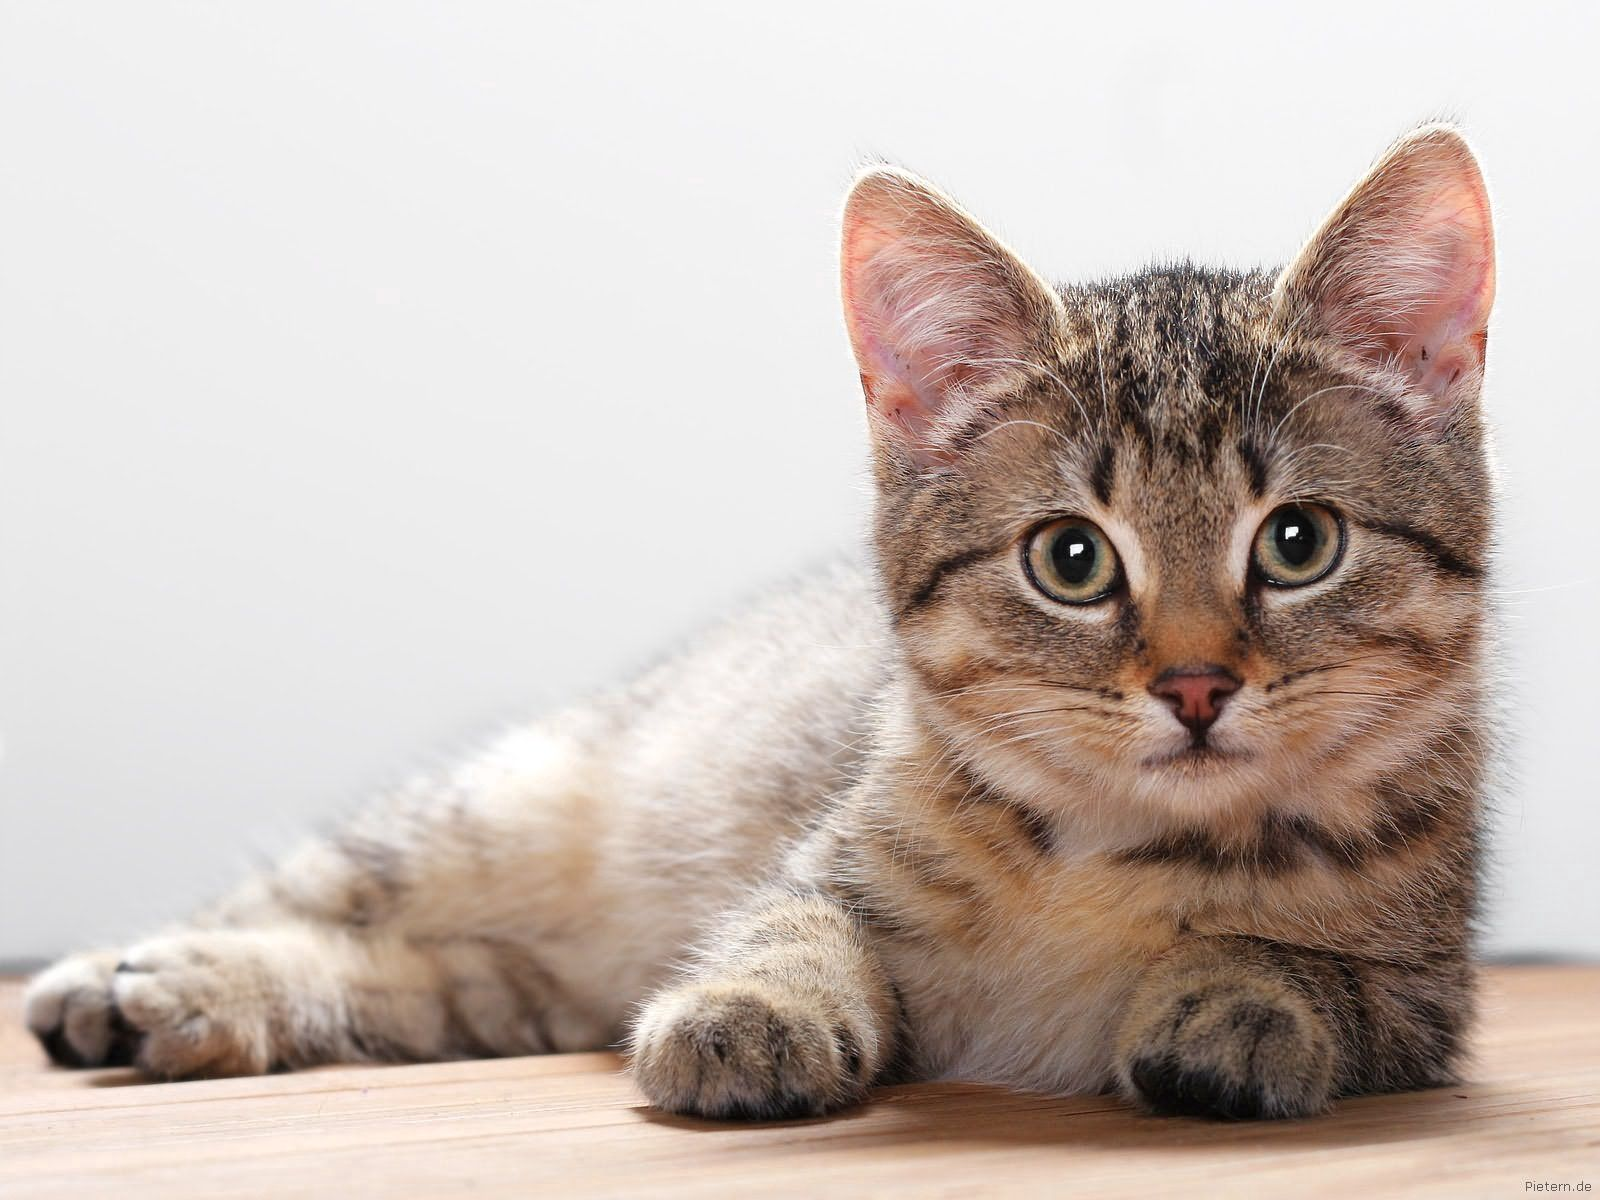 124730 download wallpaper Animals, Kitty, Kitten, To Lie Down, Lie, Muzzle screensavers and pictures for free